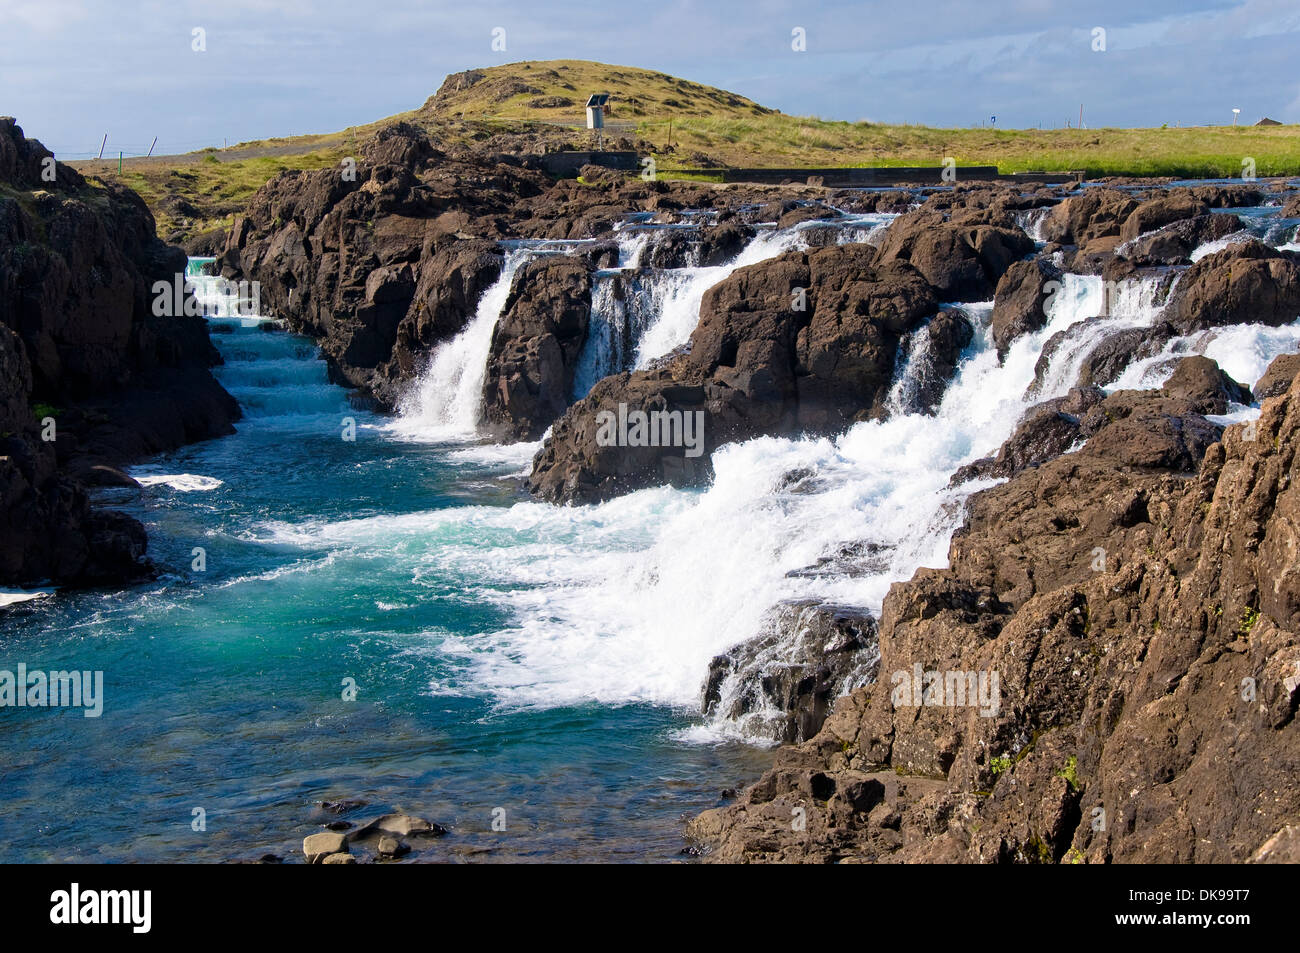 Waterfall, Borgarnes, Iceland Stock Photo